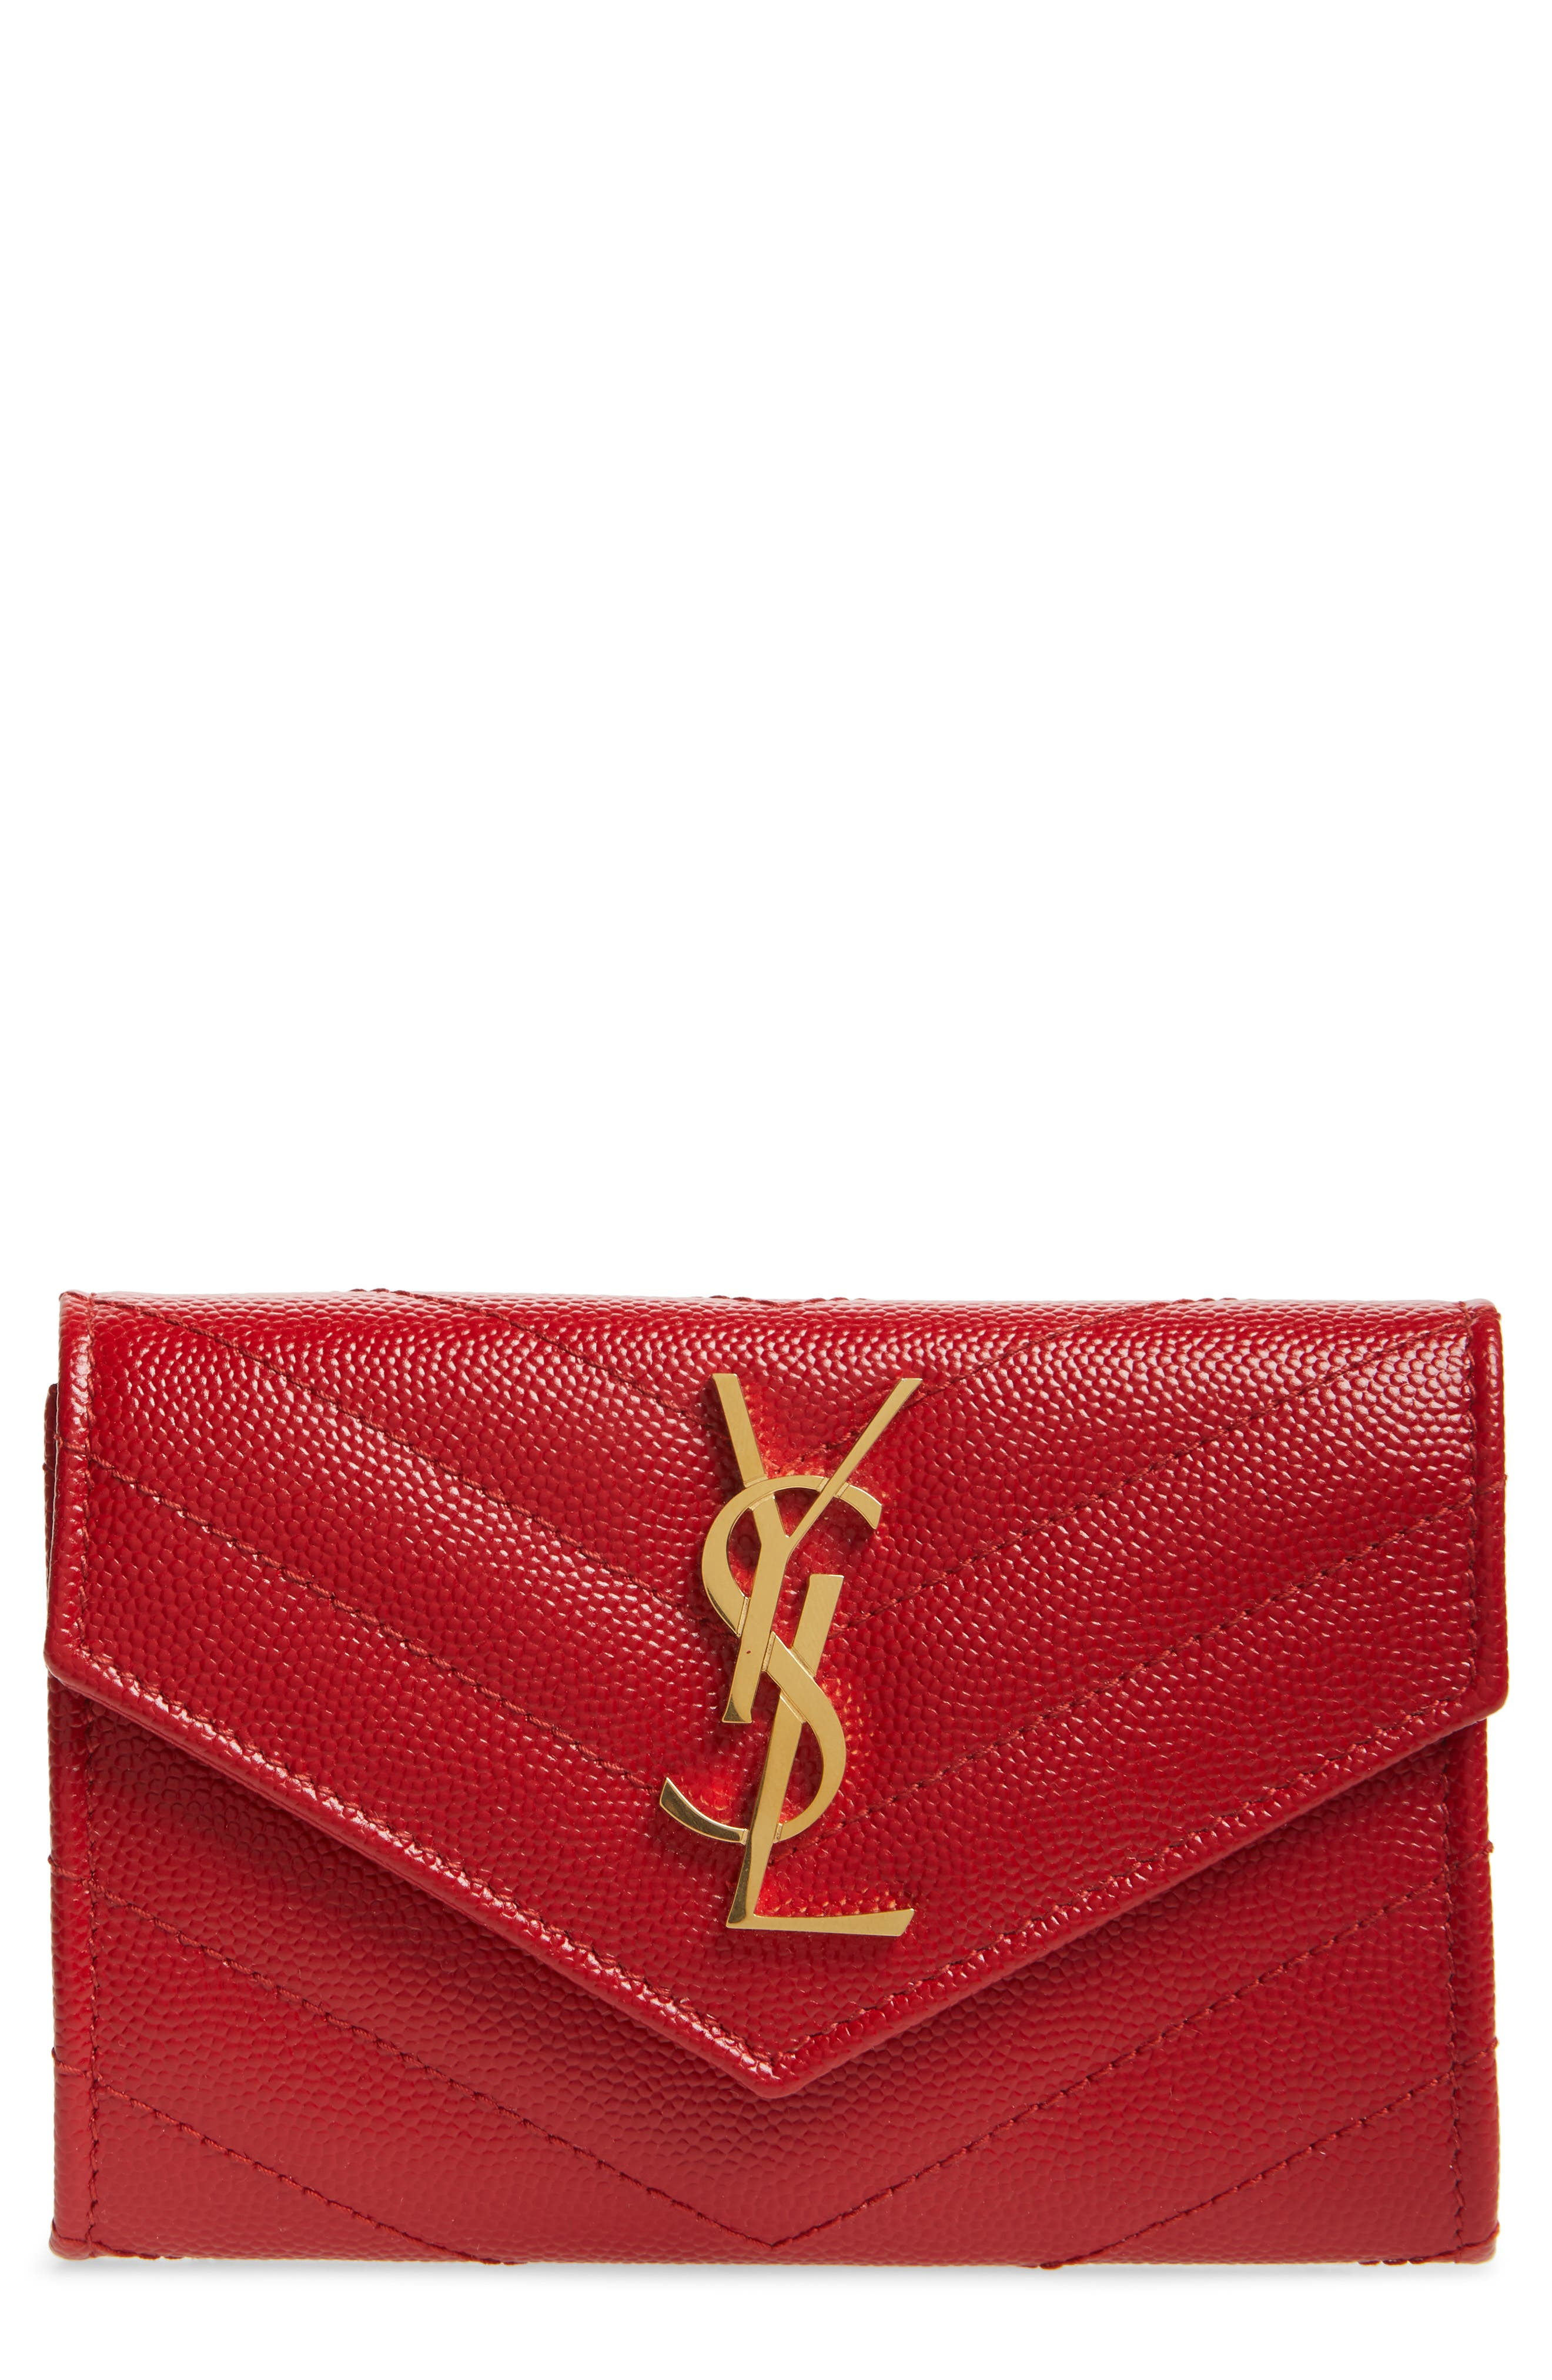 'Monogram' Quilted Leather French Wallet,                         Main,                         color, BANDANA RED